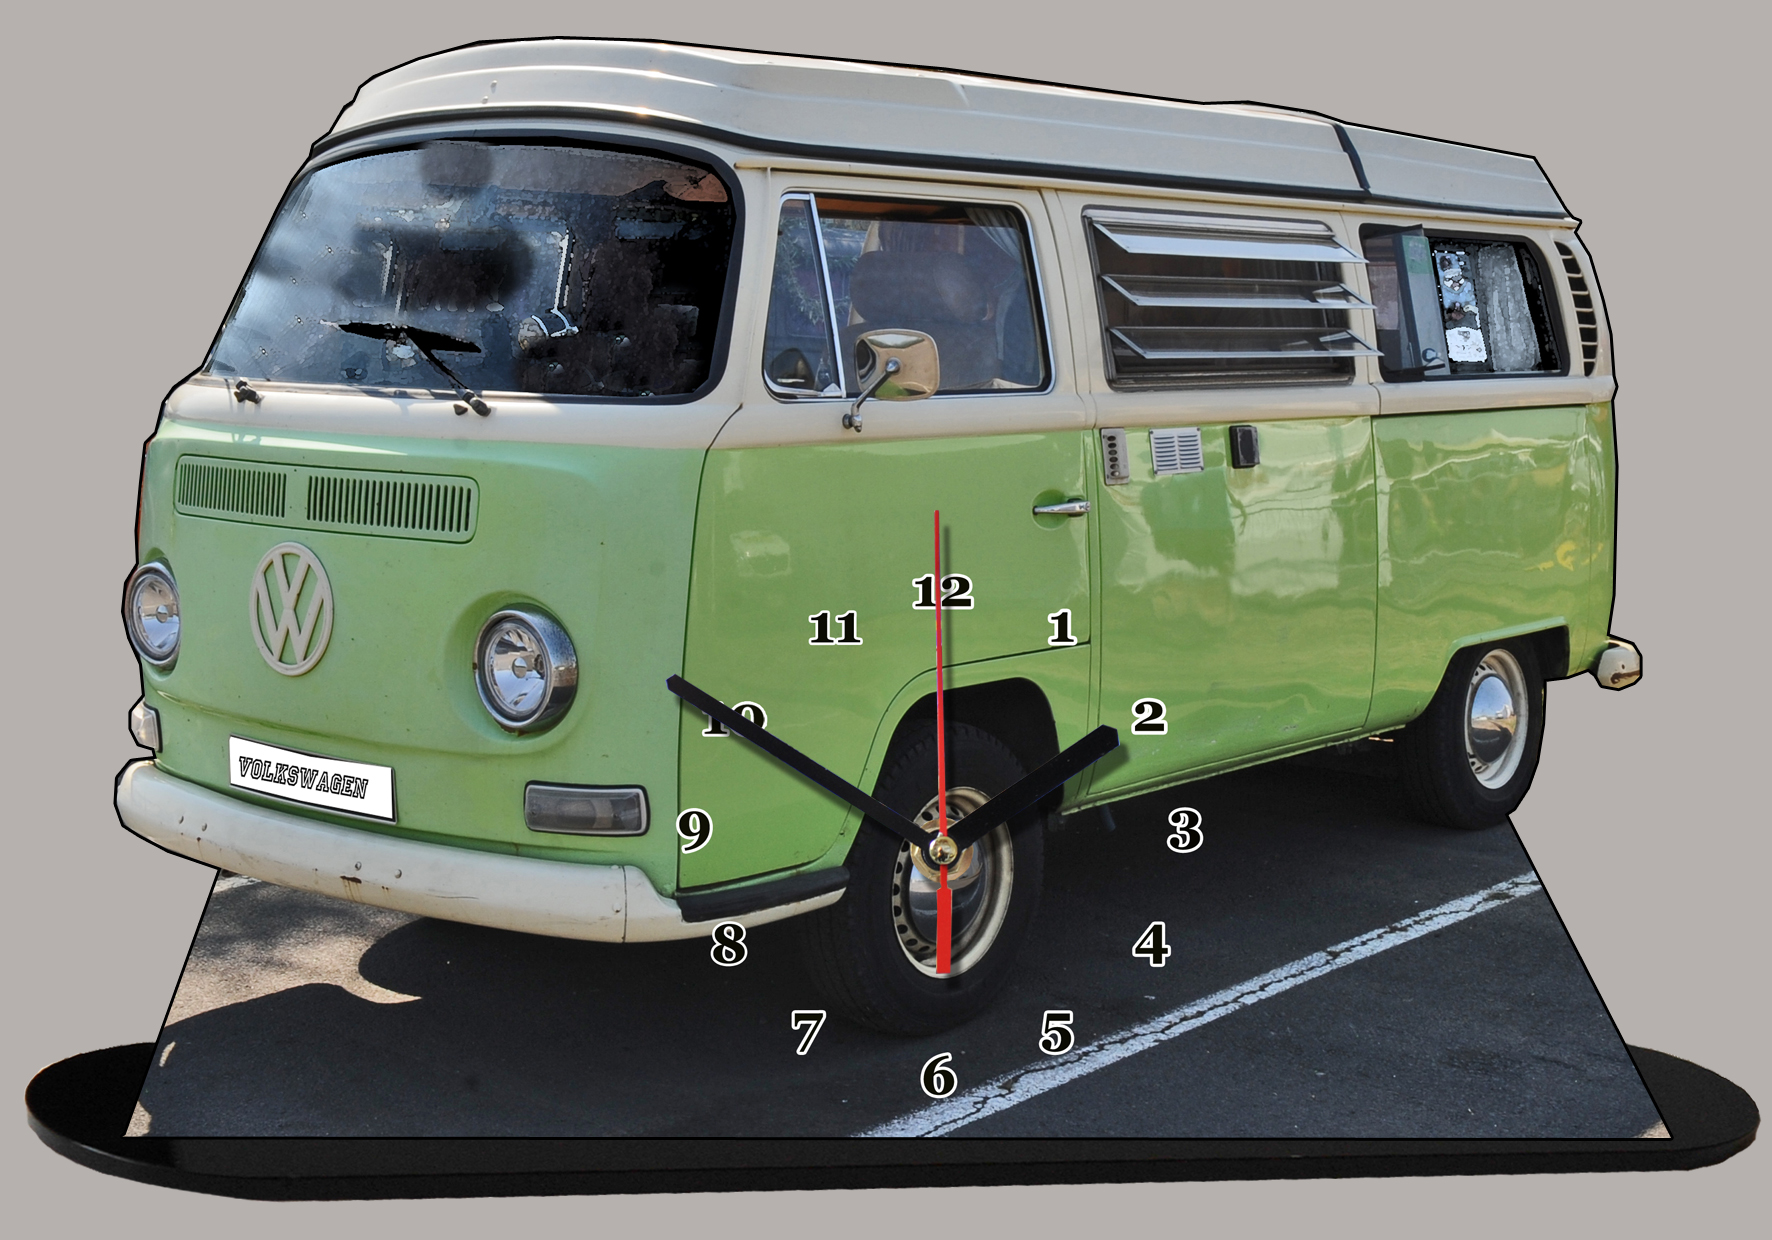 volkswagen vw combi t2 1967 en horloge miniature sur socle. Black Bedroom Furniture Sets. Home Design Ideas